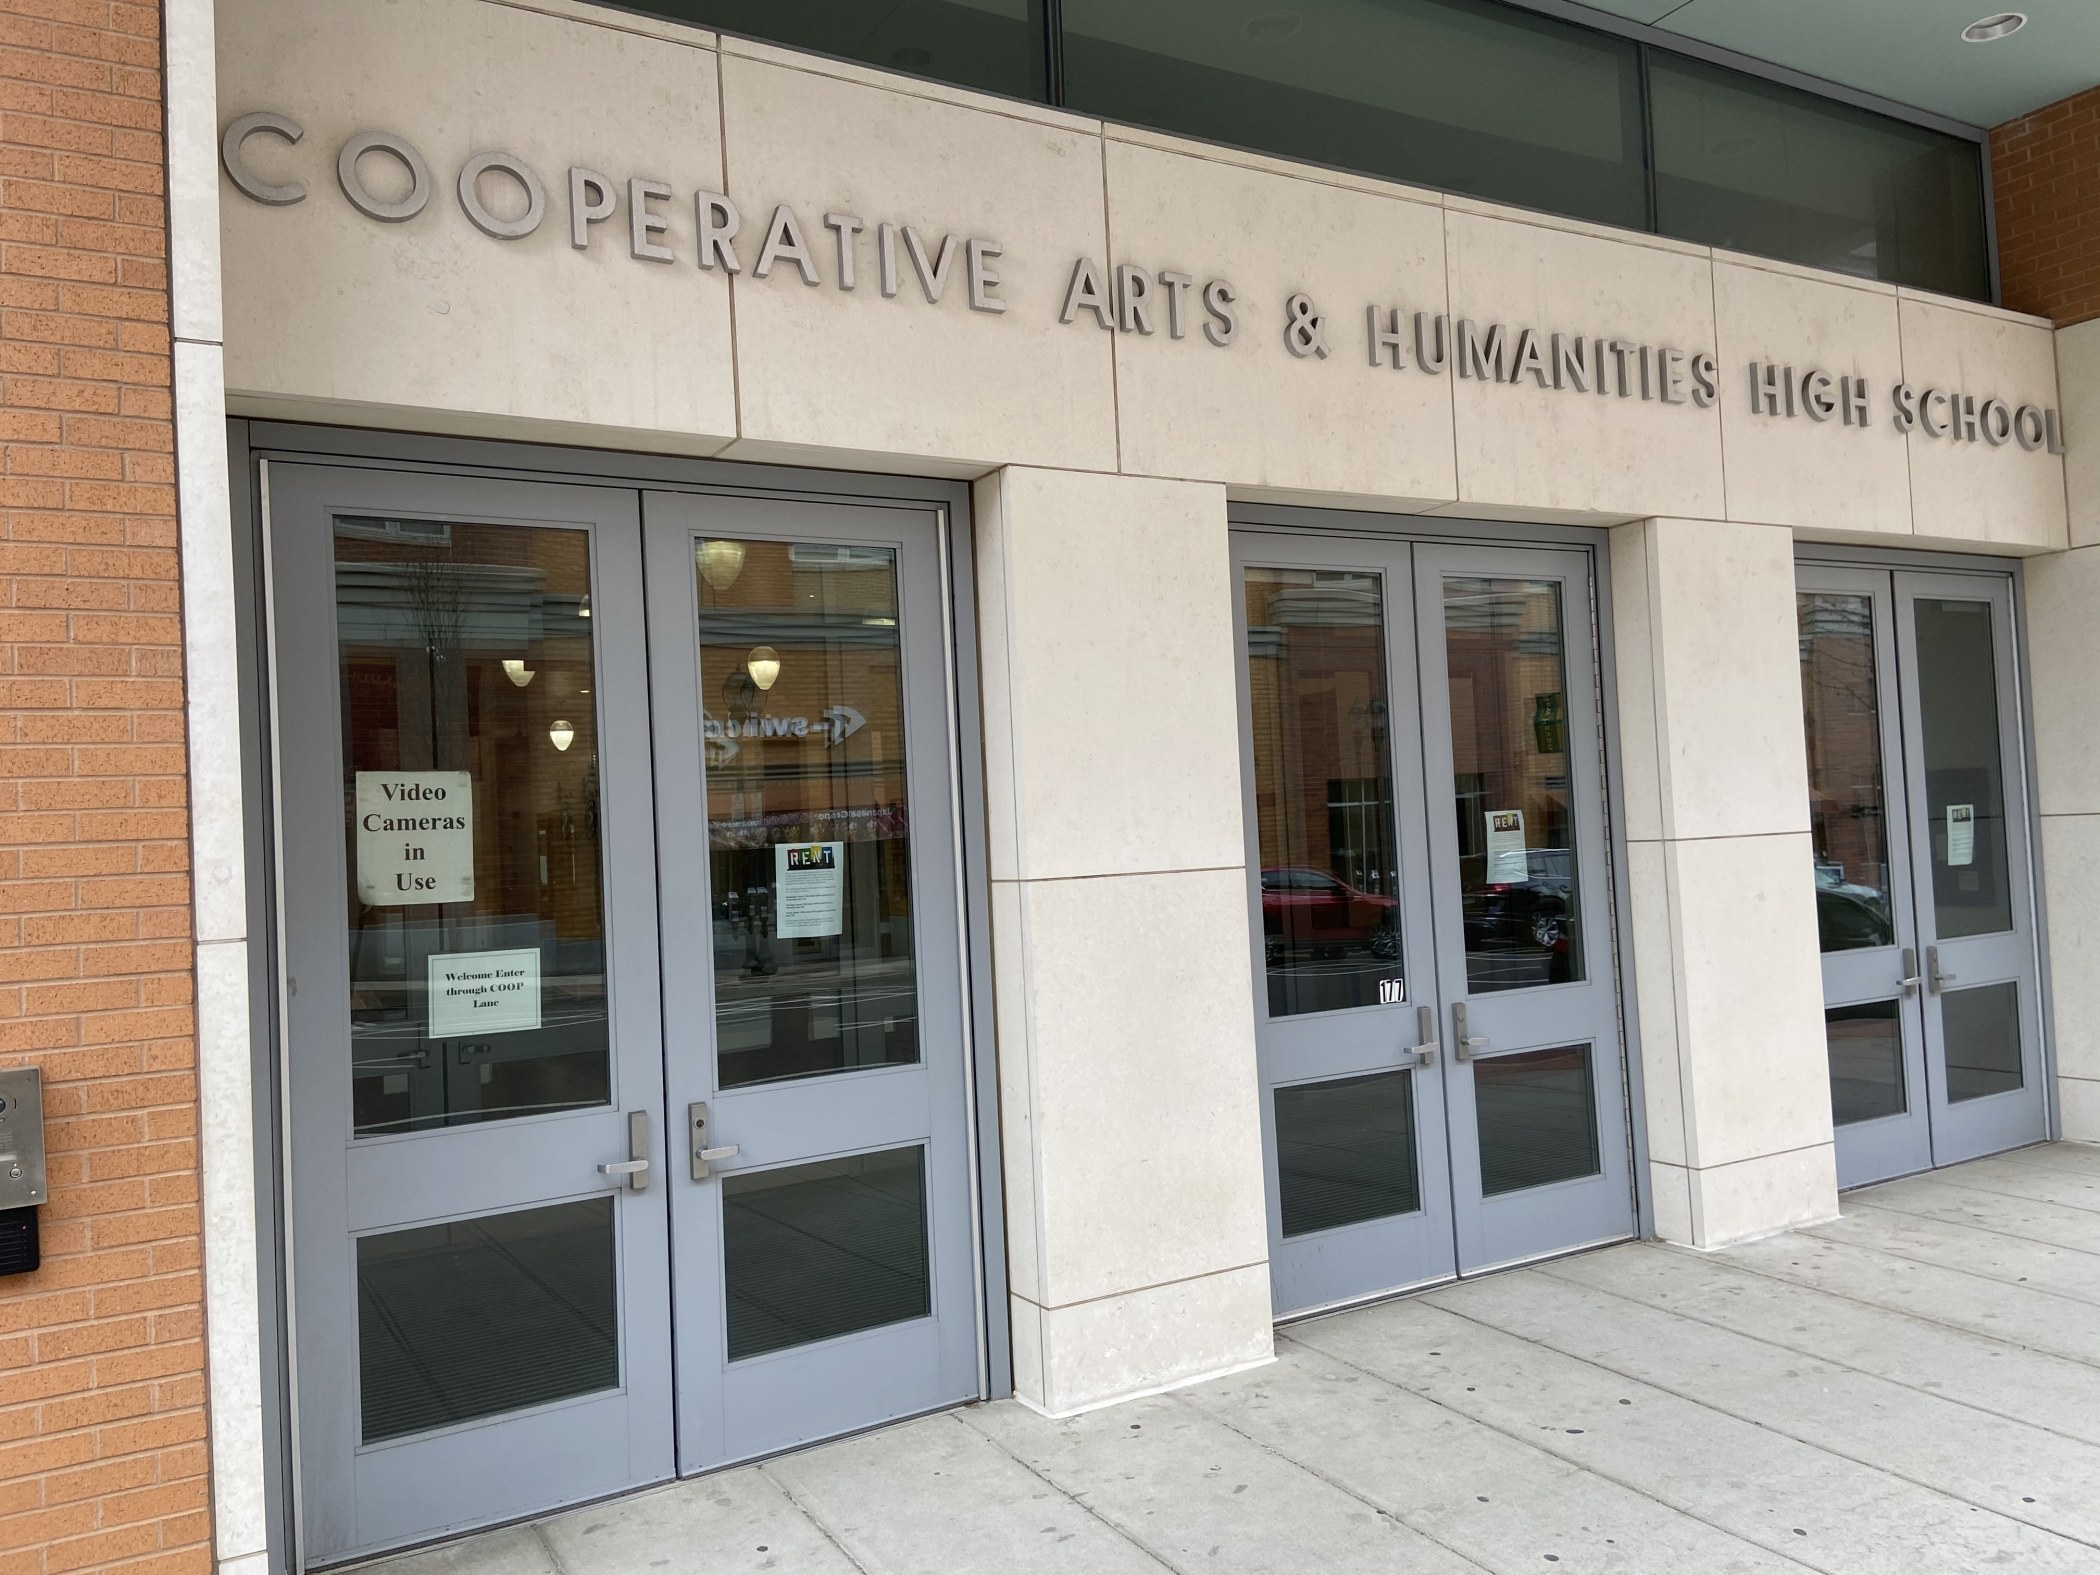 Cooperative Arts & Humanities High School on College Street in New Haven